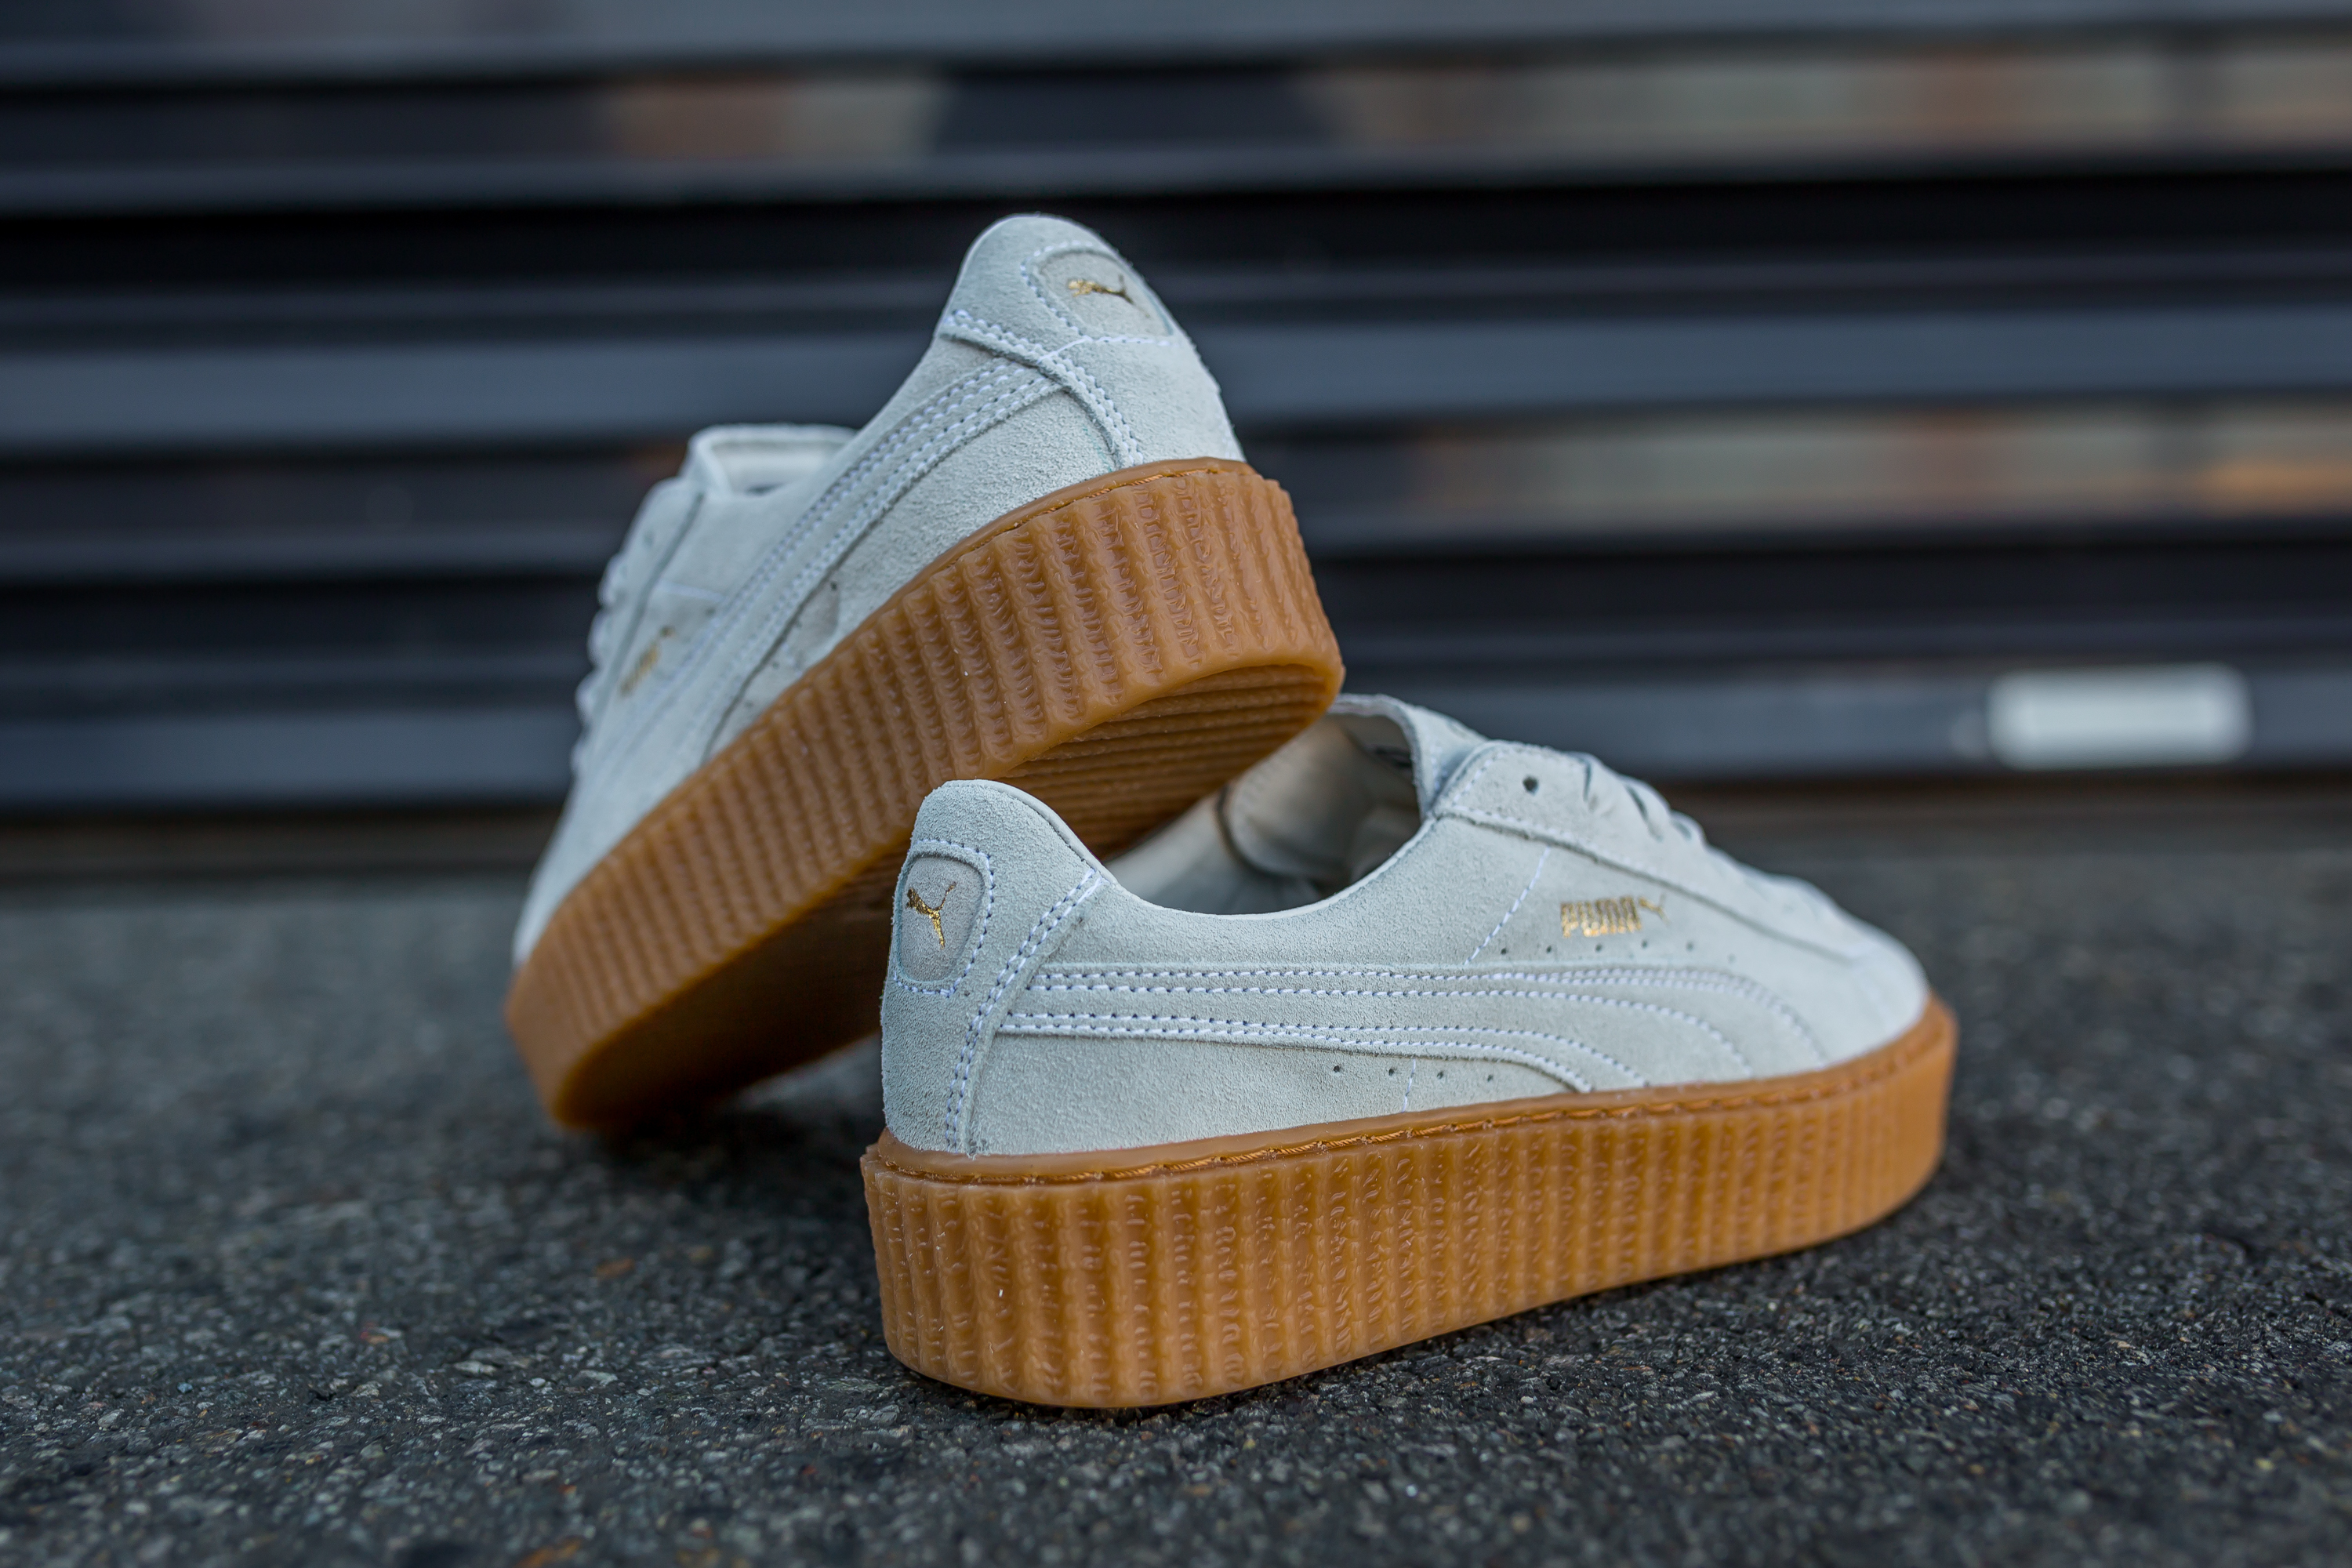 best sneakers 230af f37aa bellapesto: Puma x Rihanna Suede Creepers – PACKER SHOES